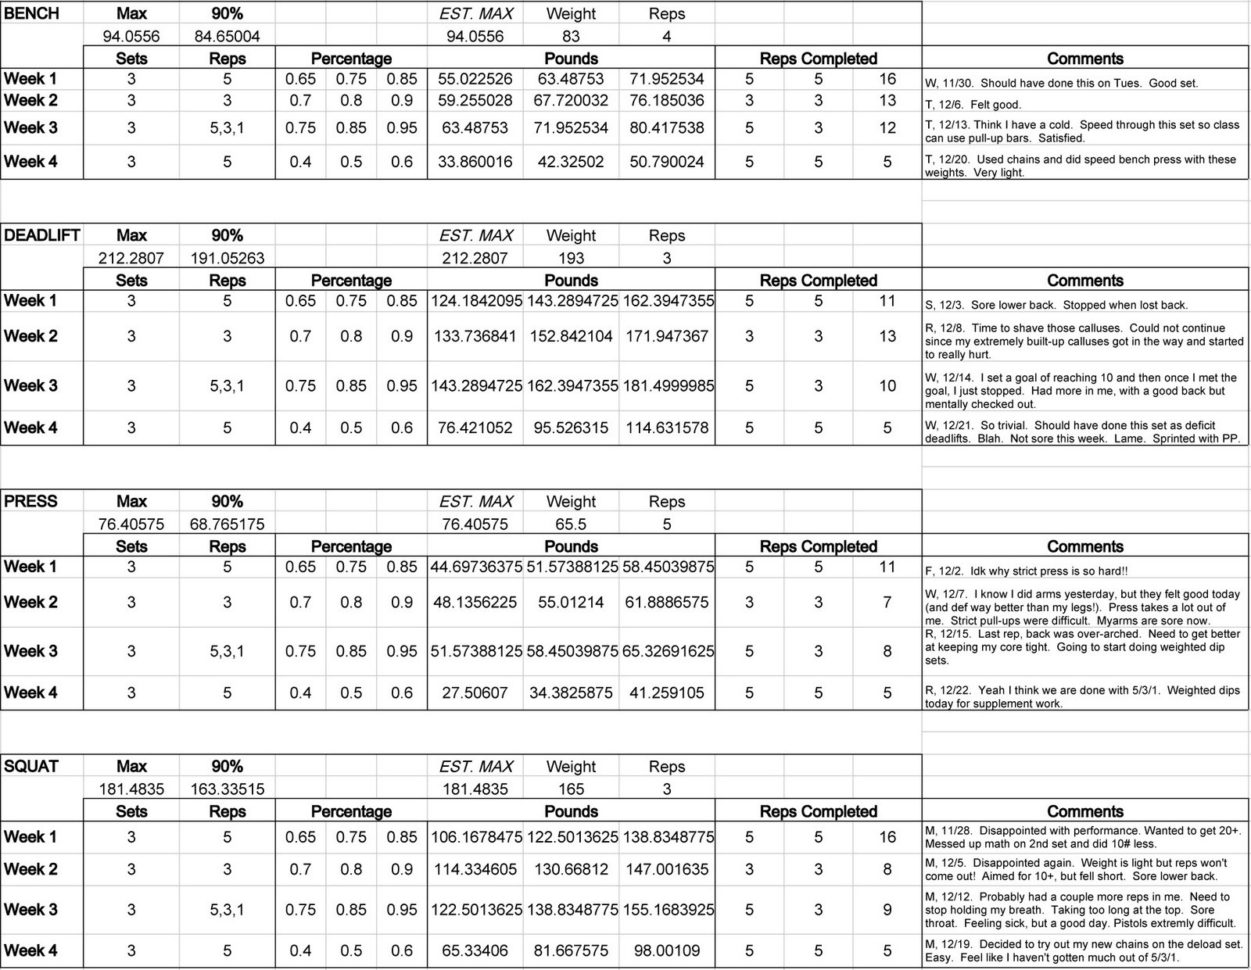 Westside Barbell Program Spreadsheet Intended For Westside Barbell Program Spreadsheet  Spreadsheet Collections